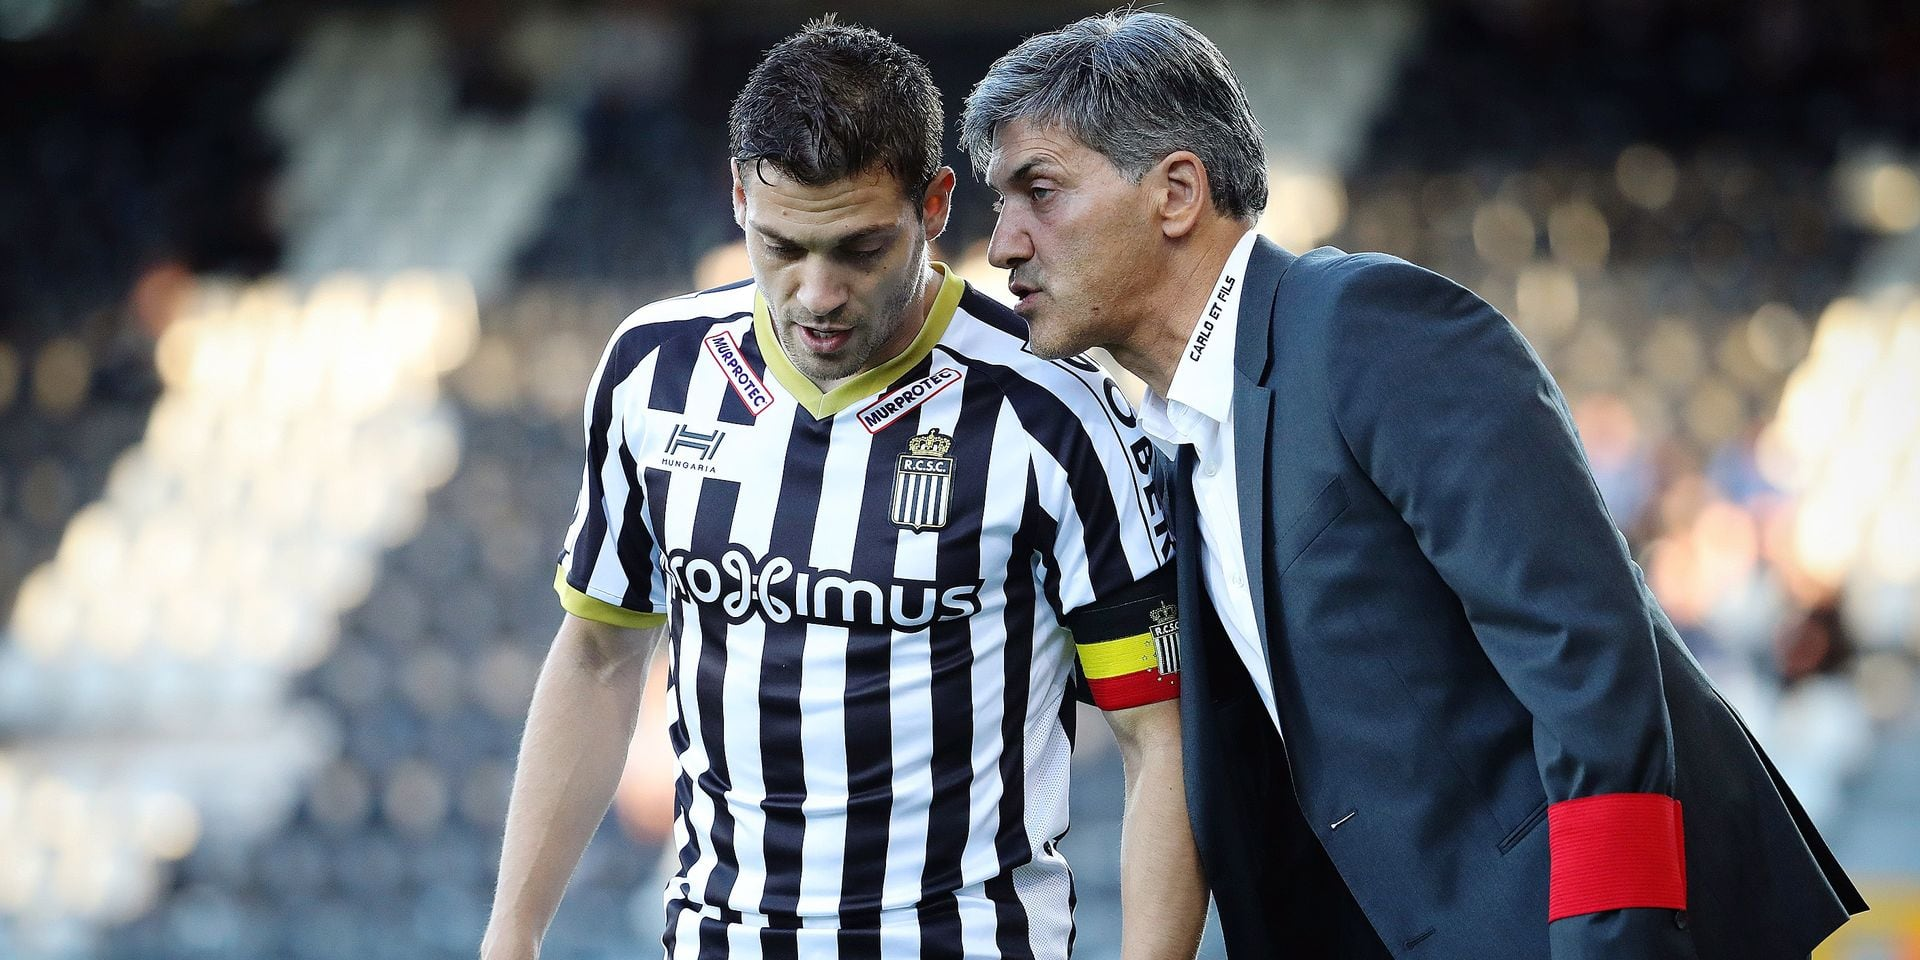 Charleroi's Francisco Javier Martos and Charleroi's head coach Felice Mazzu pictured during the Jupiler Pro League match between Sporting Charleroi and KAS Eupen, in Charleroi, Saturday 14 October 2017, on the day ten of the Jupiler Pro League, the Belgian soccer championship season 2017-2018. BELGA PHOTO VIRGINIE LEFOUR